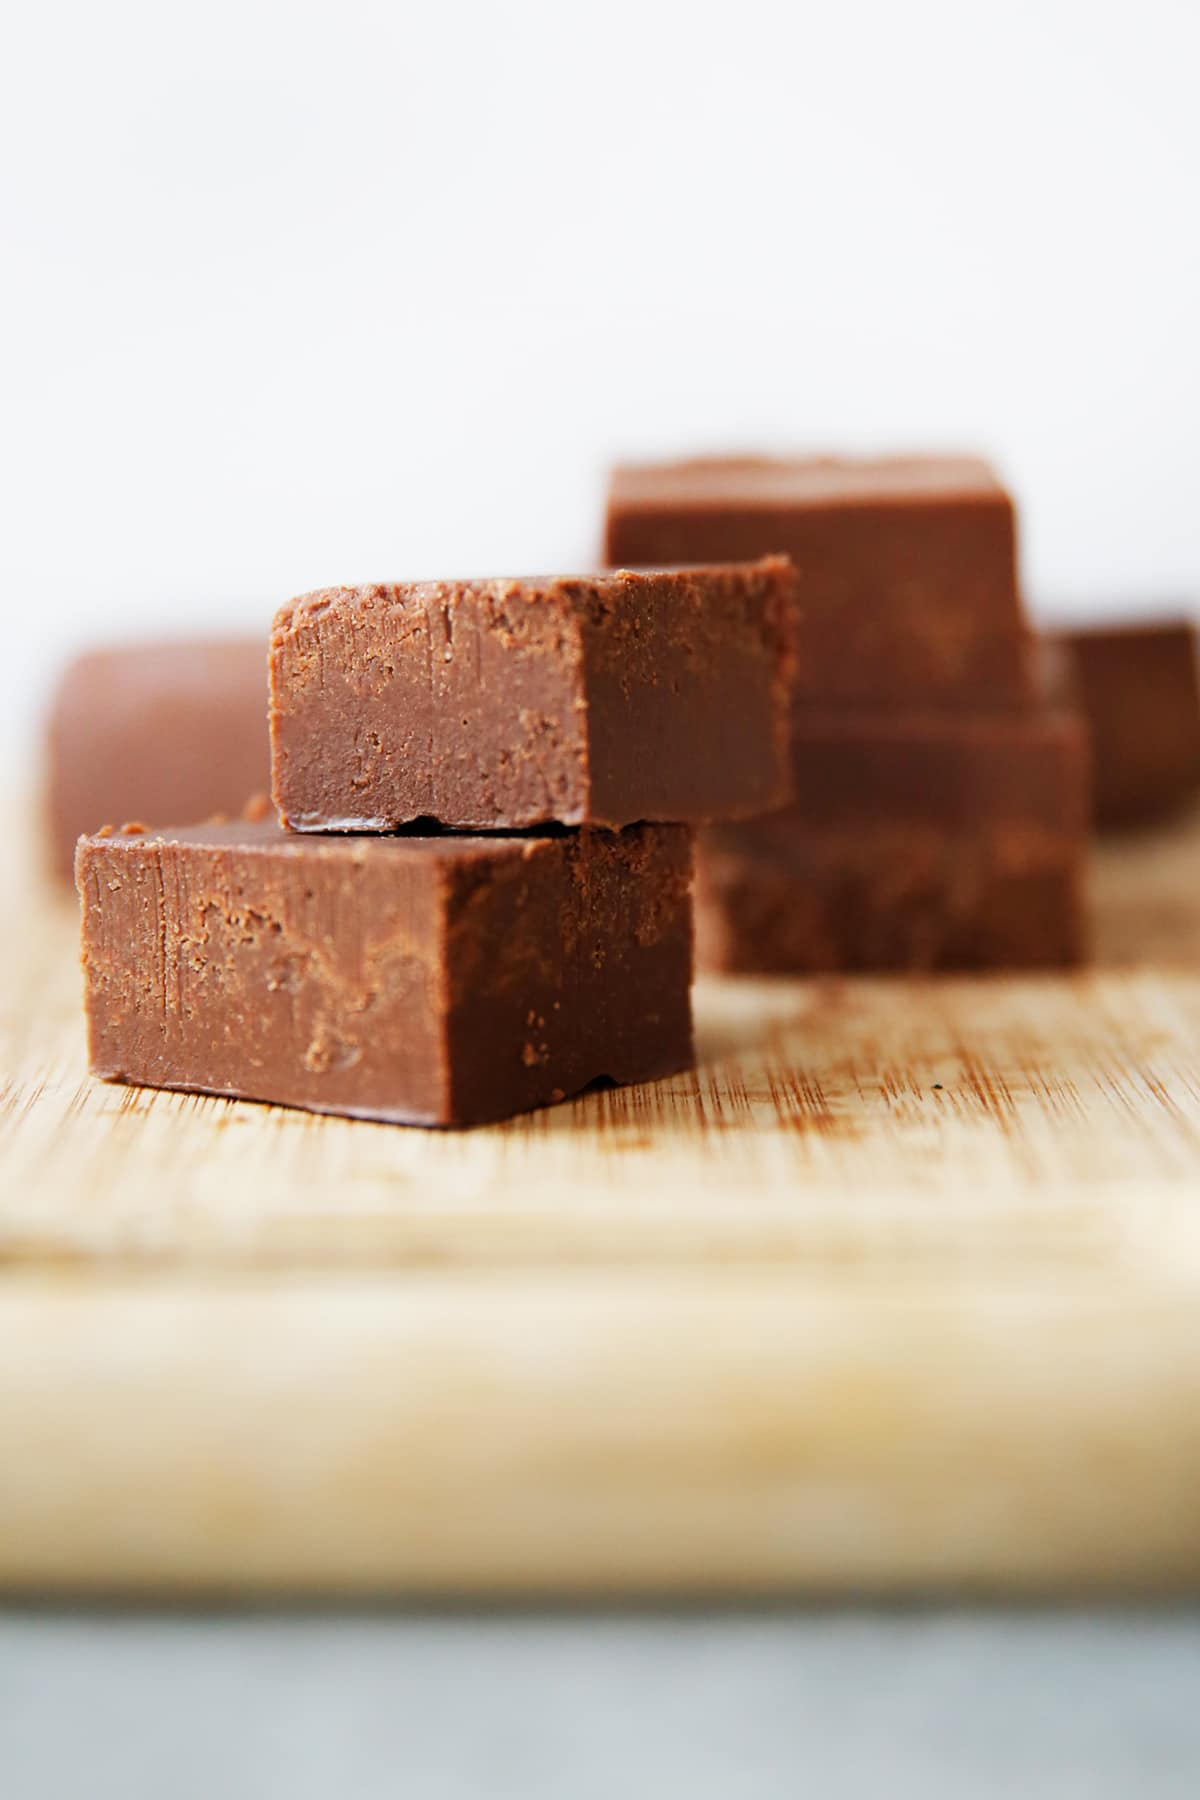 Paleo Fudge (Nut-free)